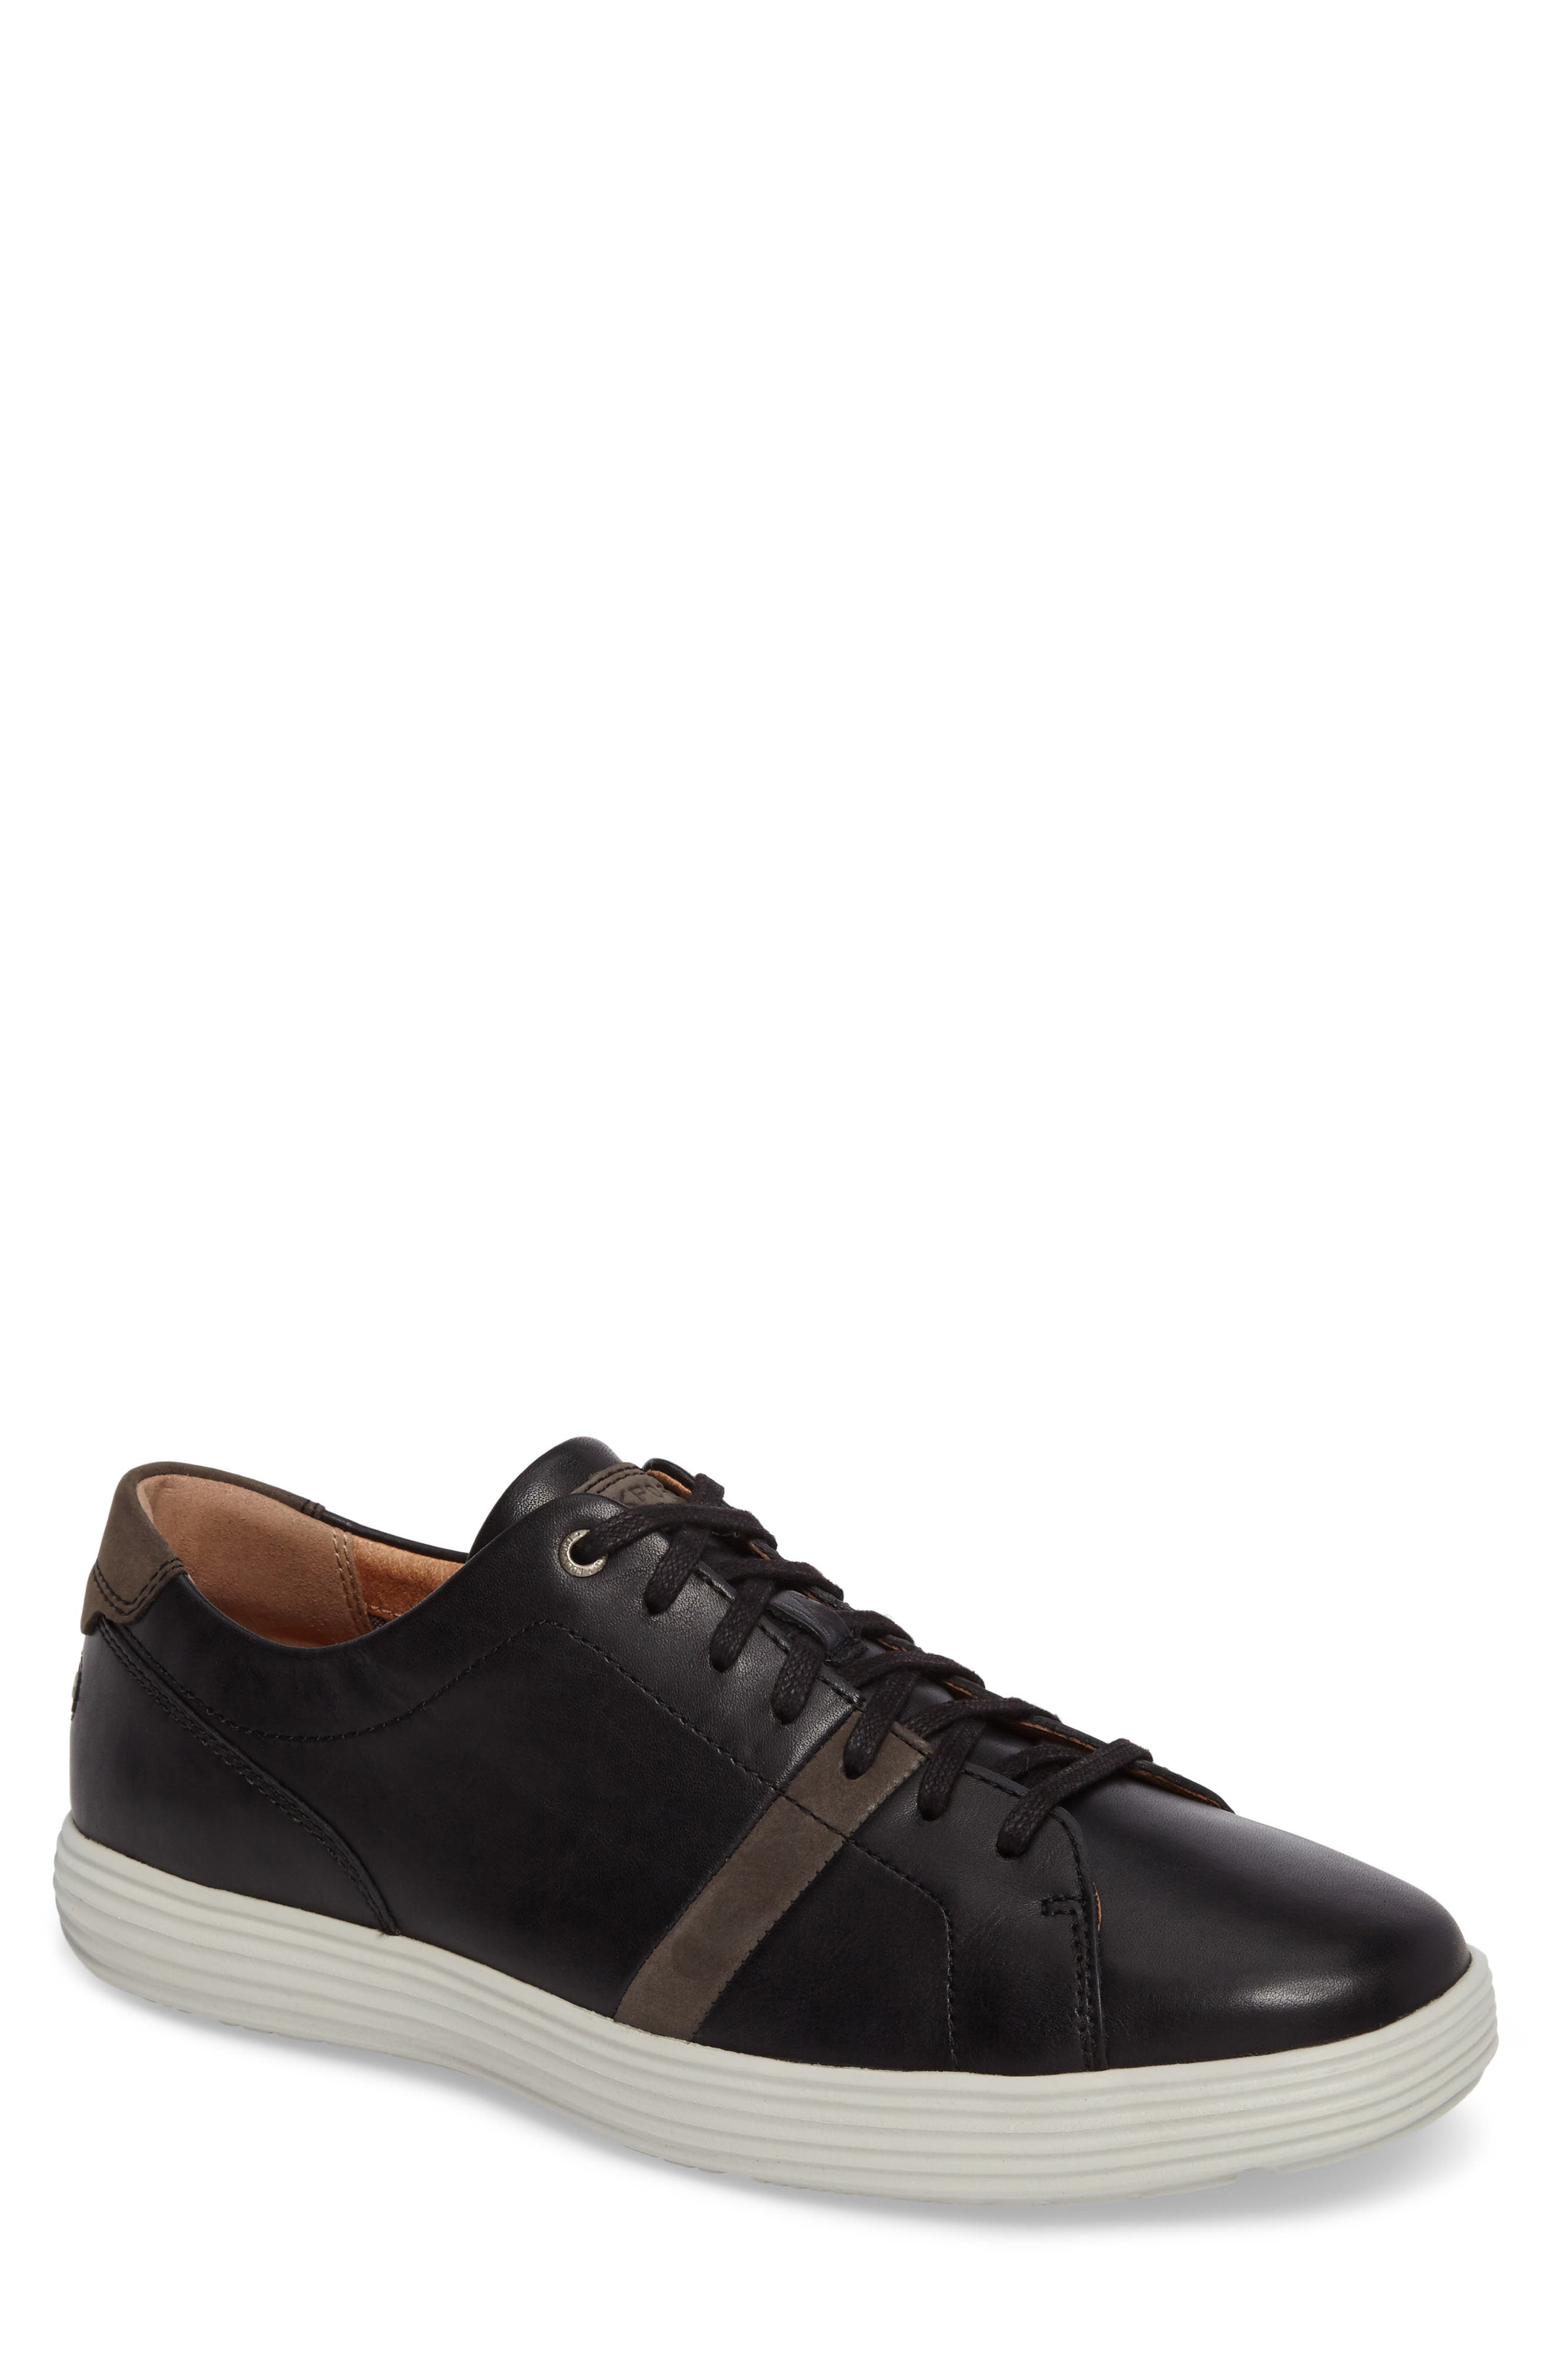 Thurston Sneaker,                         Main,                         color, Black Leather